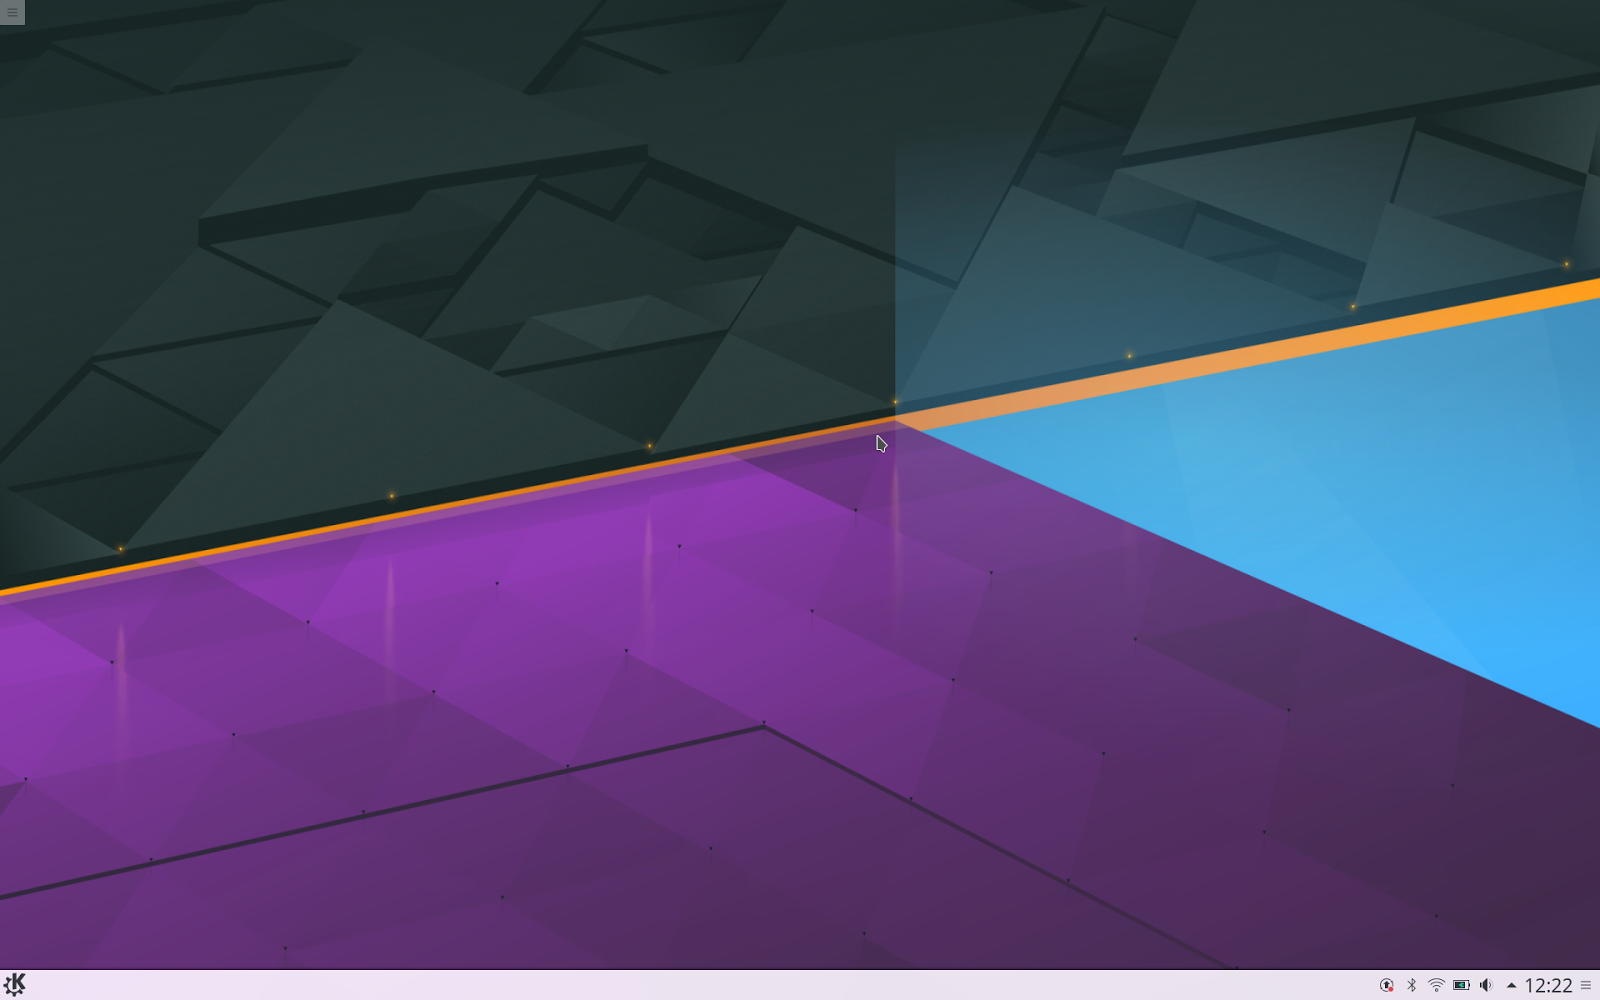 KDE Plasma 5.7 Beta